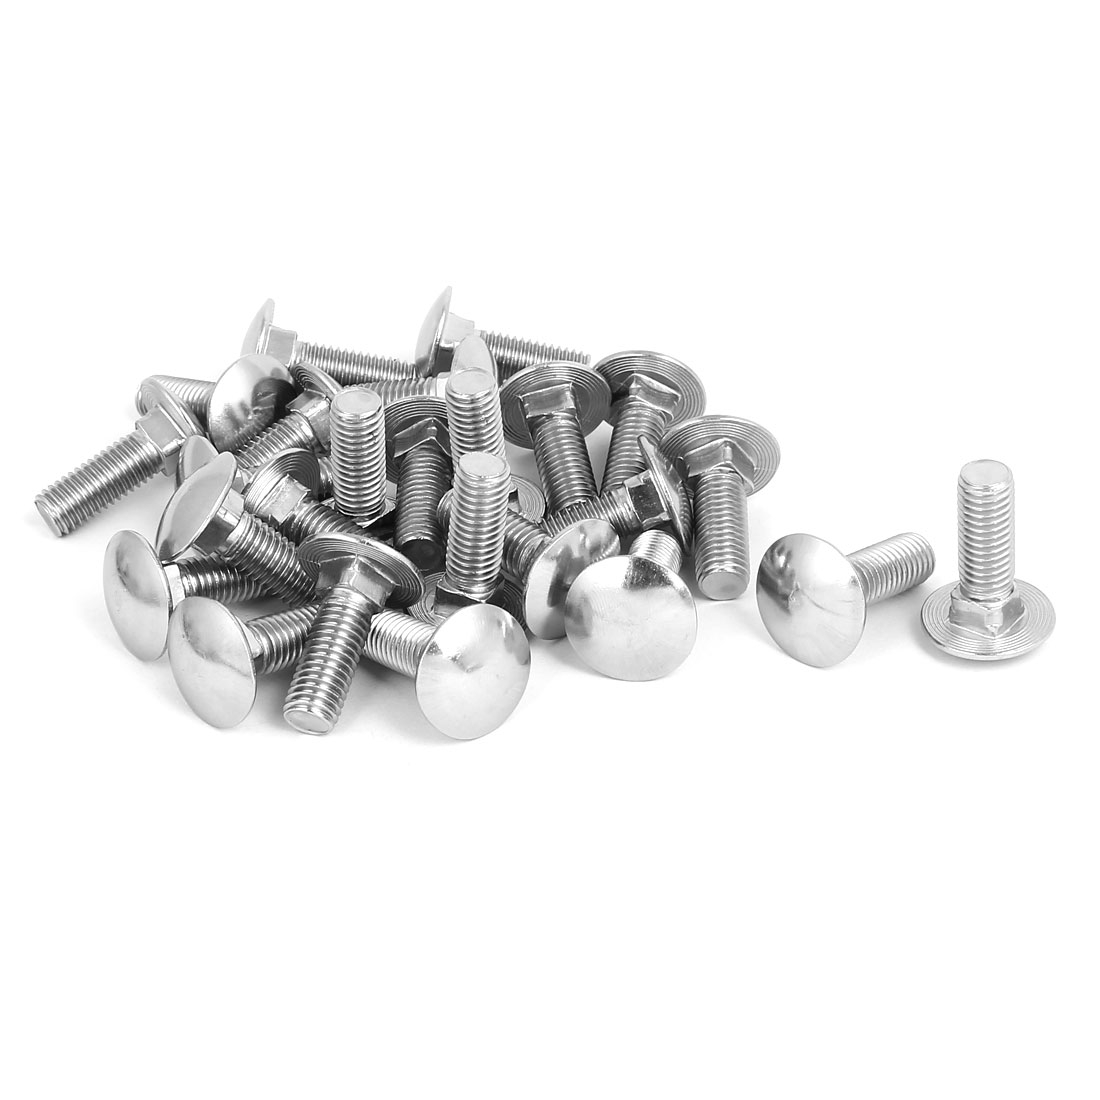 M10 x 30mm 304 Stainless Steel Square Neck Carriage Coach Bolts DIN603 25PCS